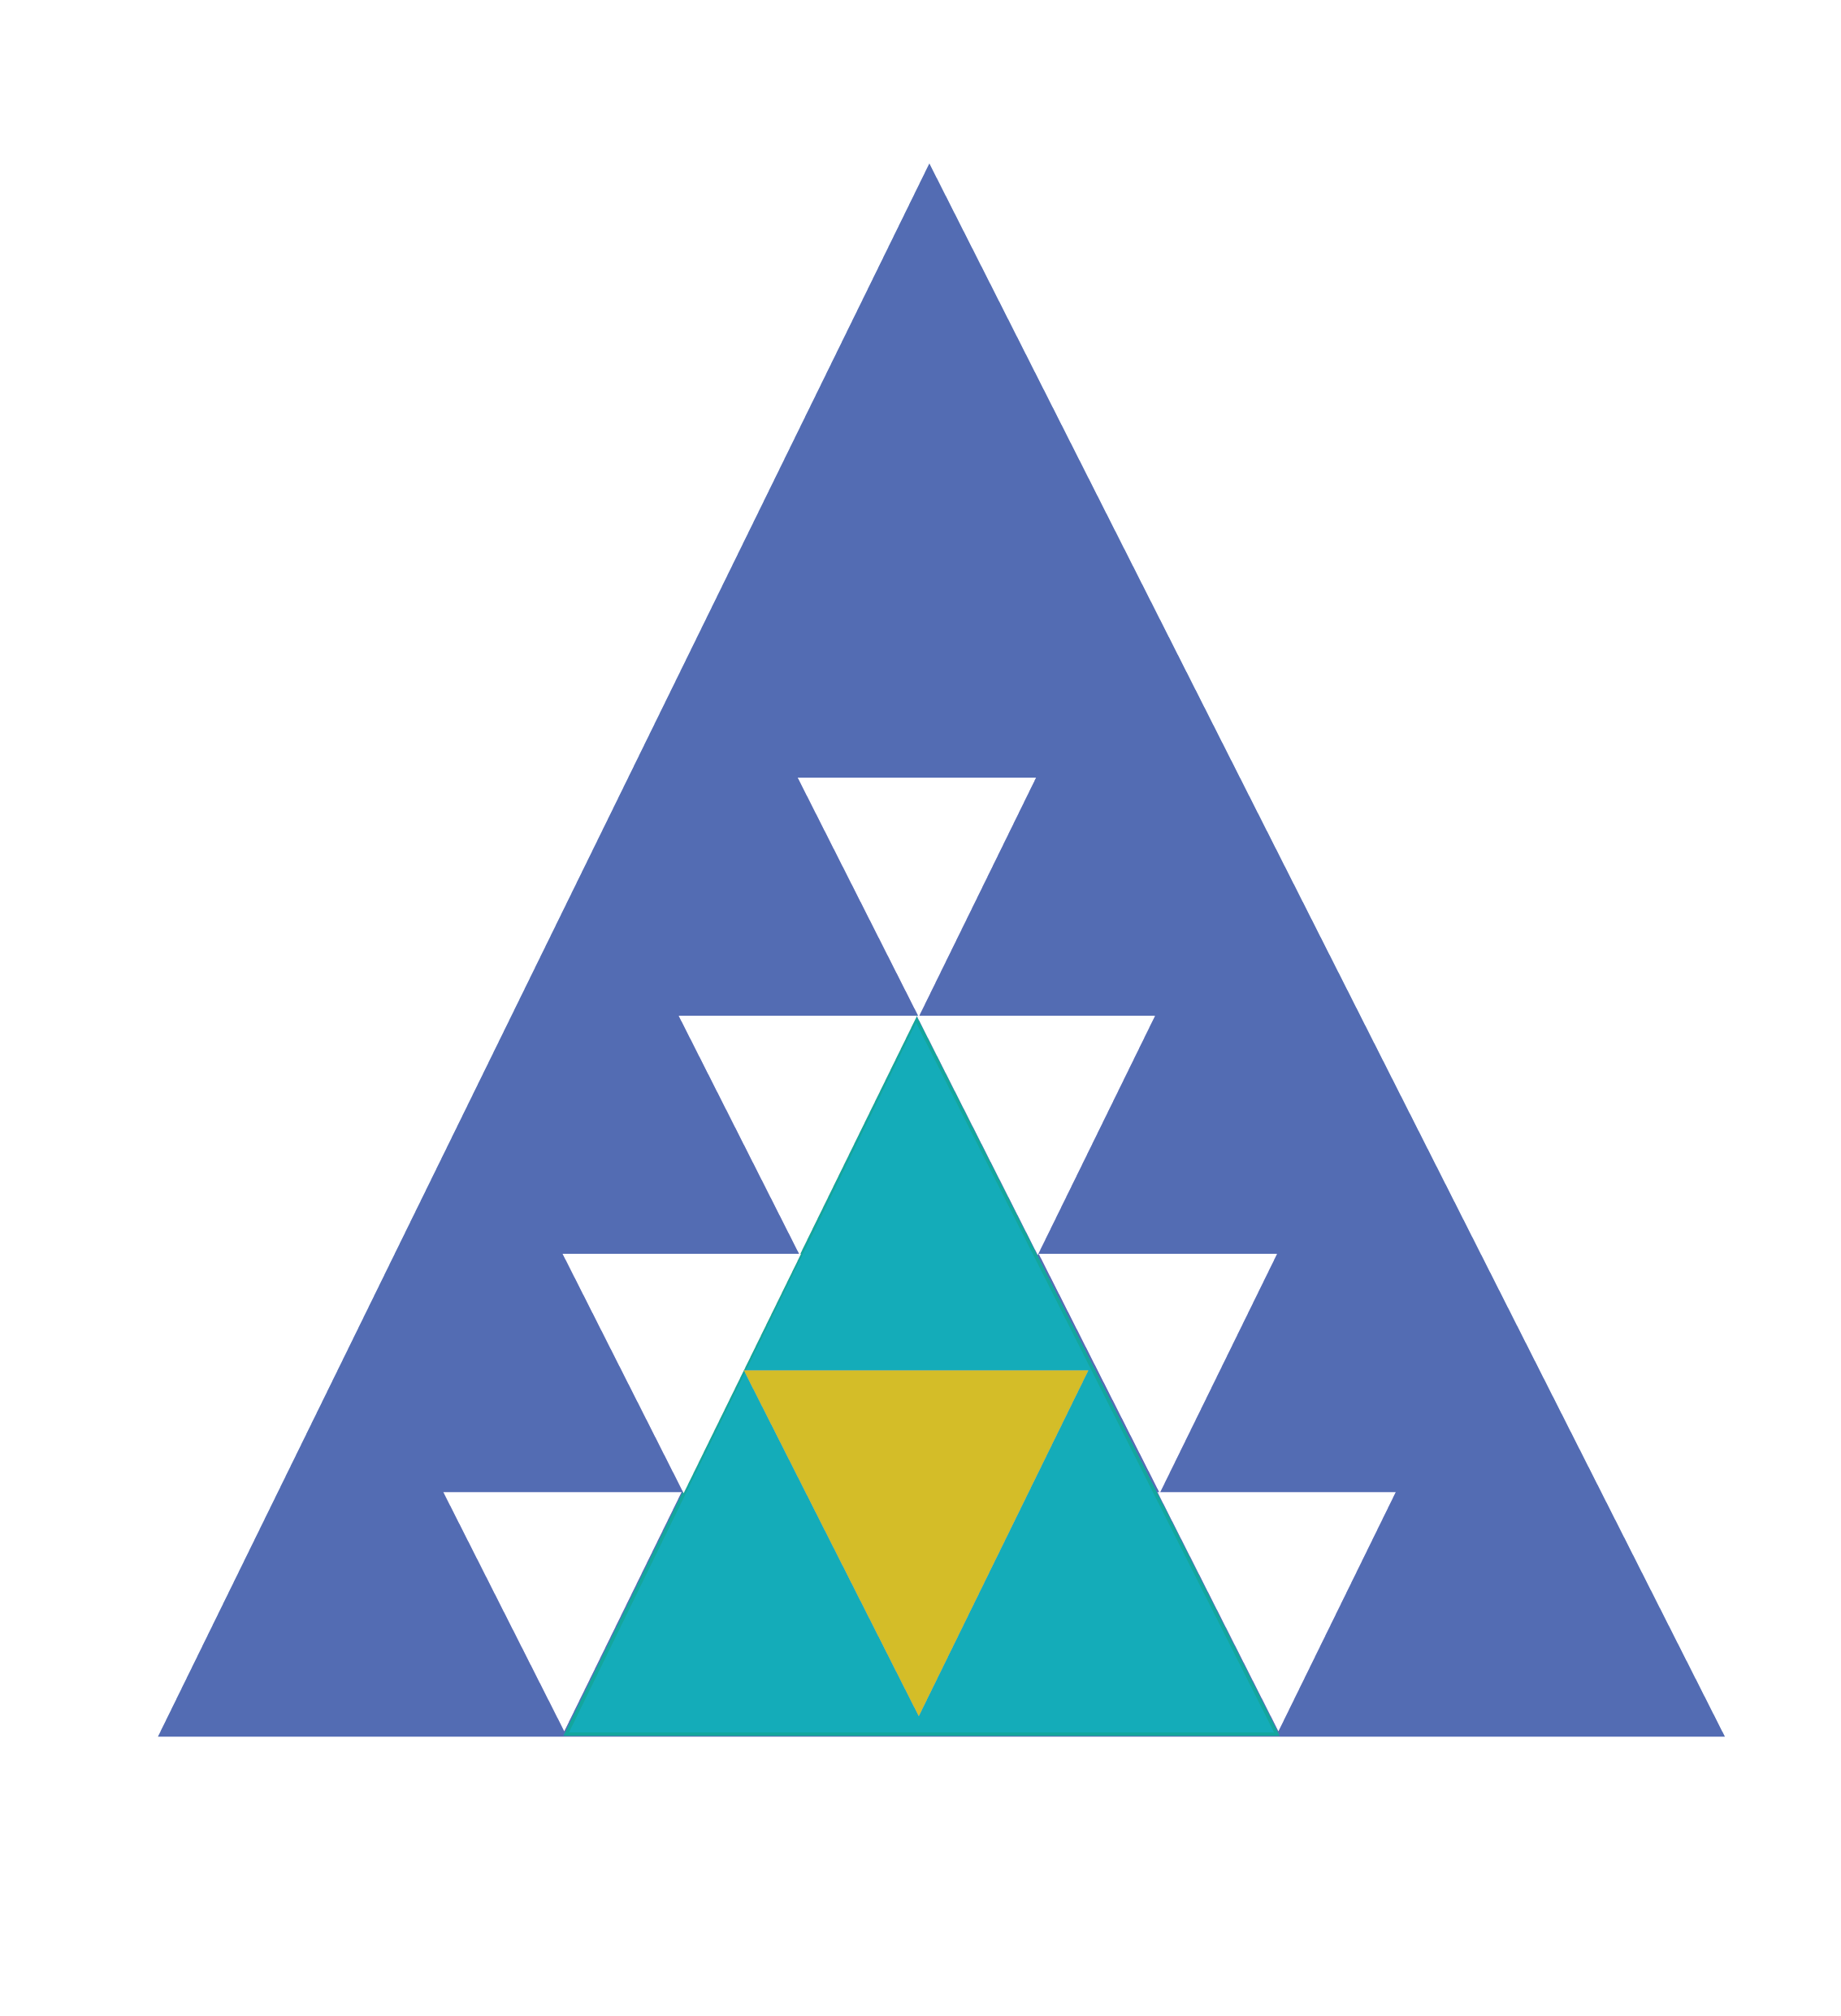 Multiple coloured triangles surrounded by white triangles, designed to represent global challenges